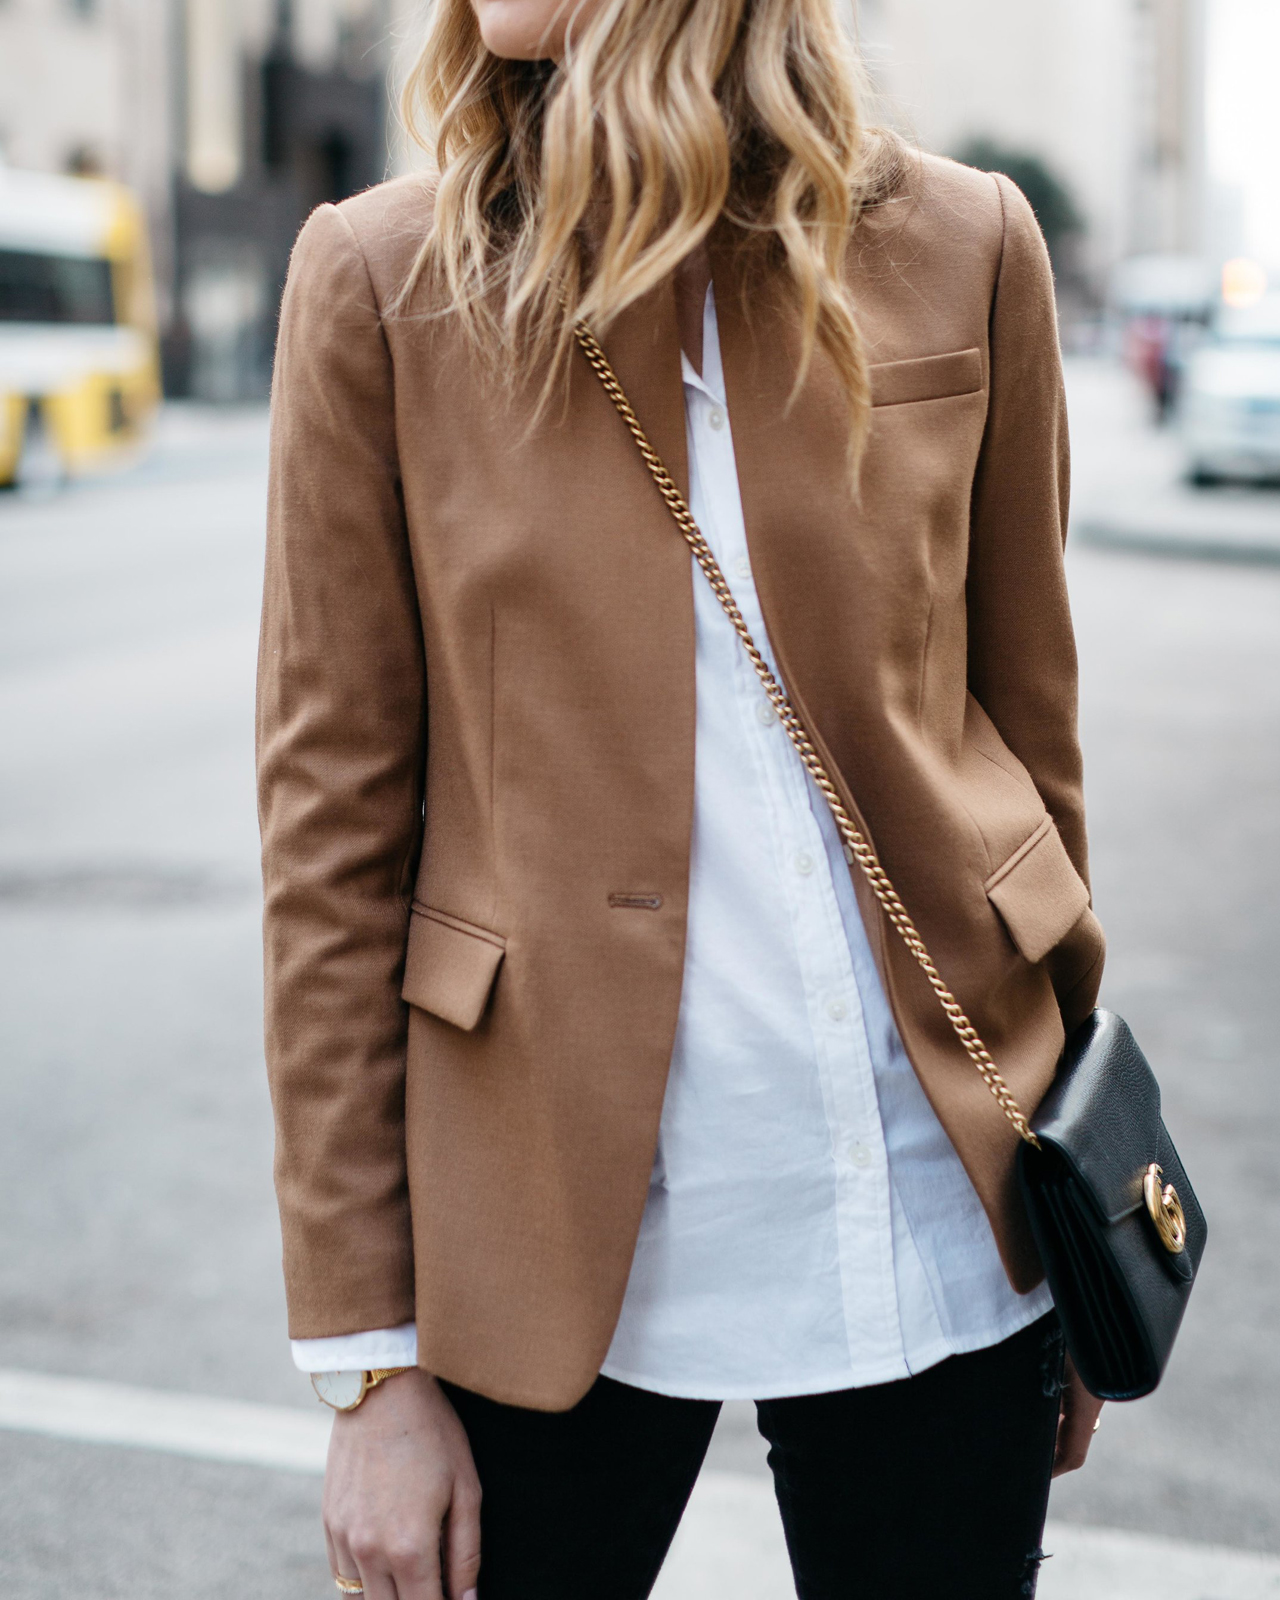 Fall Outfit, Winter Outfit, White Button-Down Shirt, Camel Blazer, Gucci Marmont Handbag